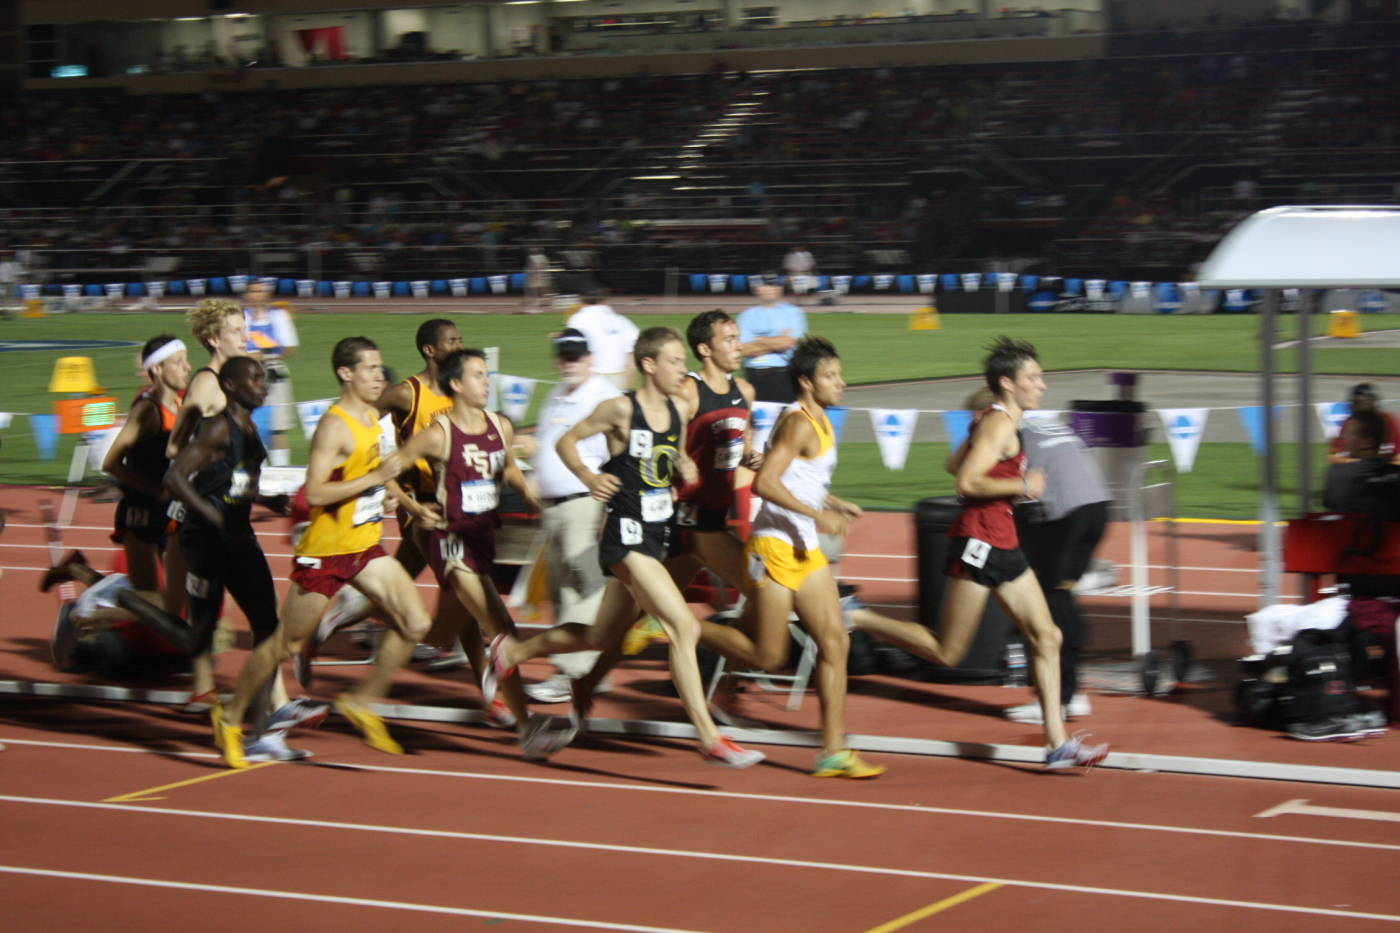 Matt Leeder in the 5K.